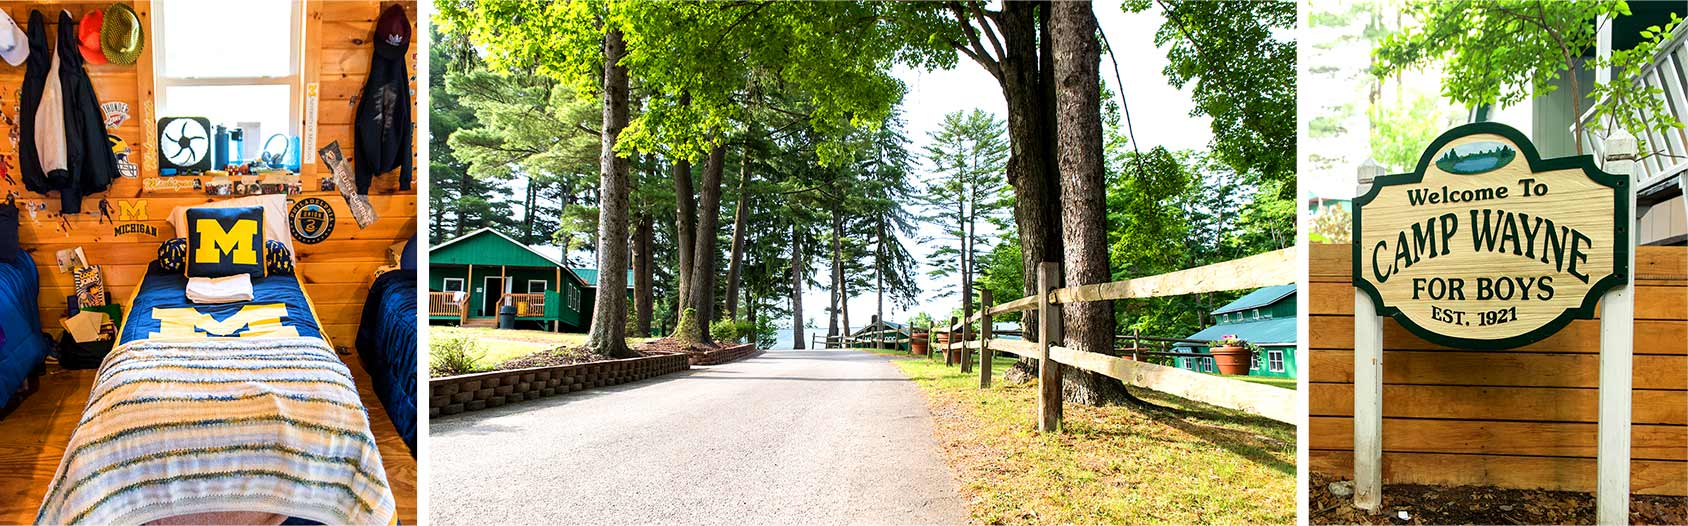 Directions & Lodging | Camp Wayne for Boys Pennsylvania